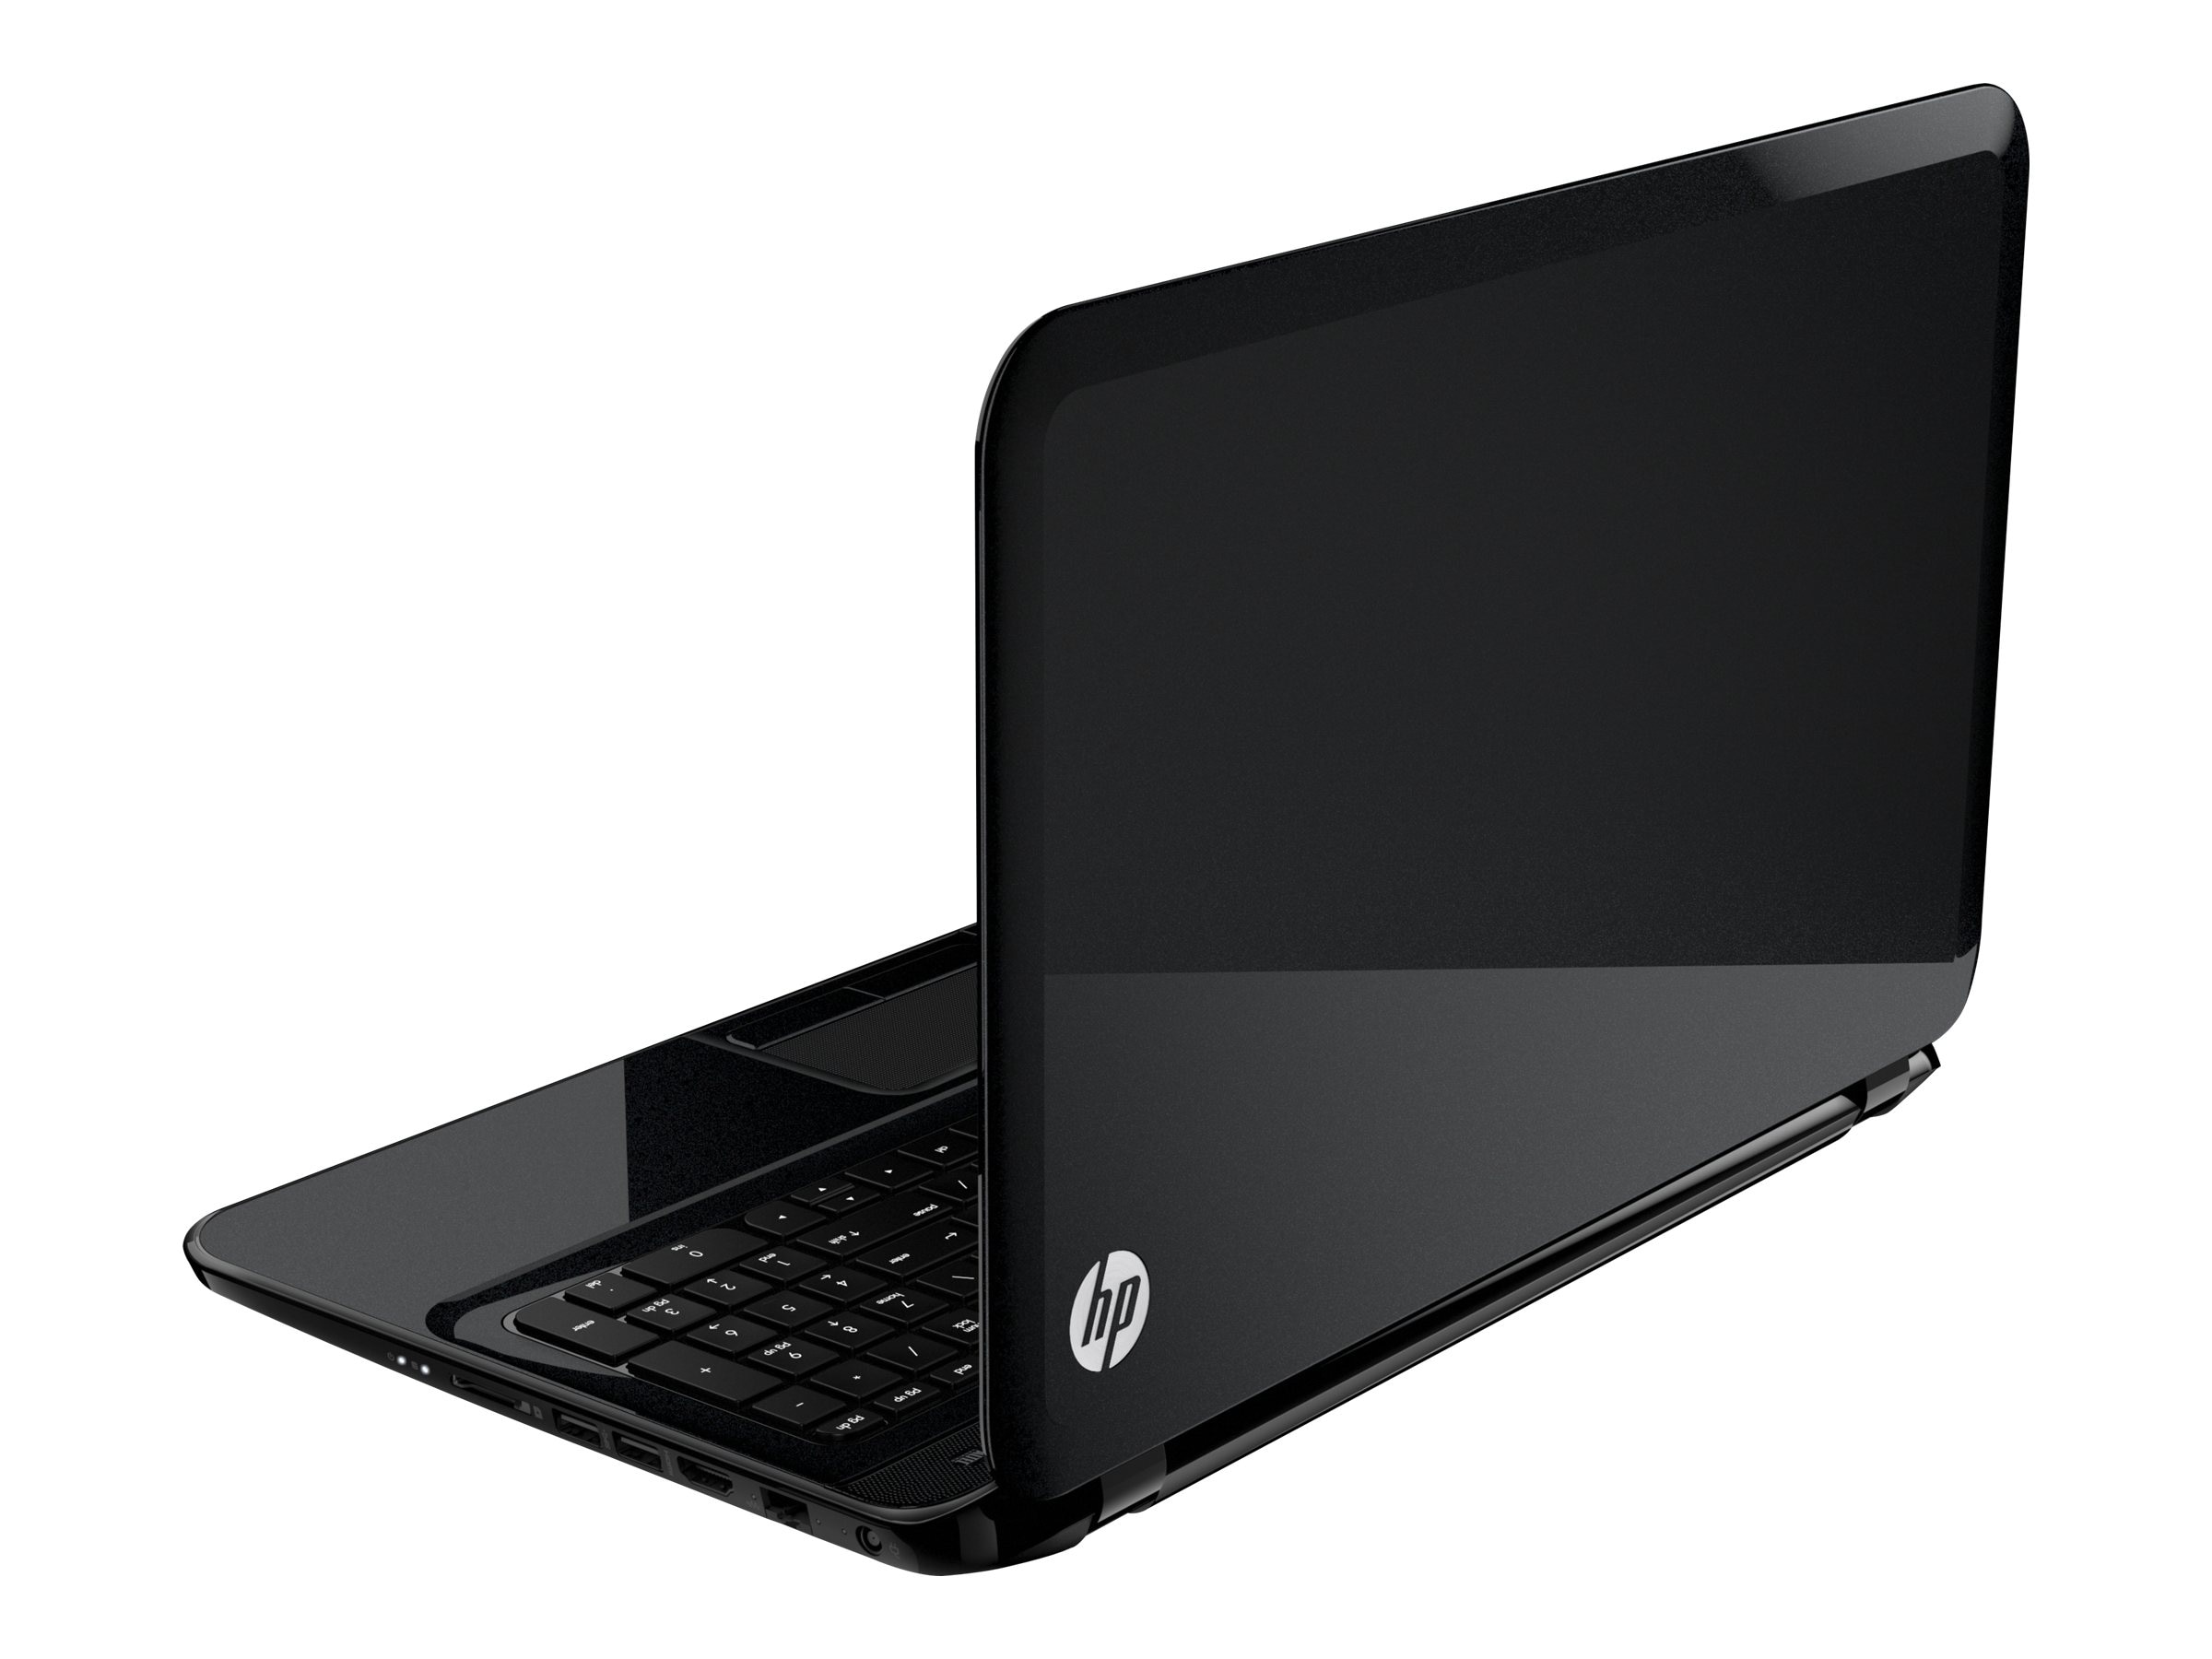 HP Pavilion 15-B010us SleekBook : 1.5GHz Core i3 15.6in display, C2M98UA#ABA, 14771480, Notebooks